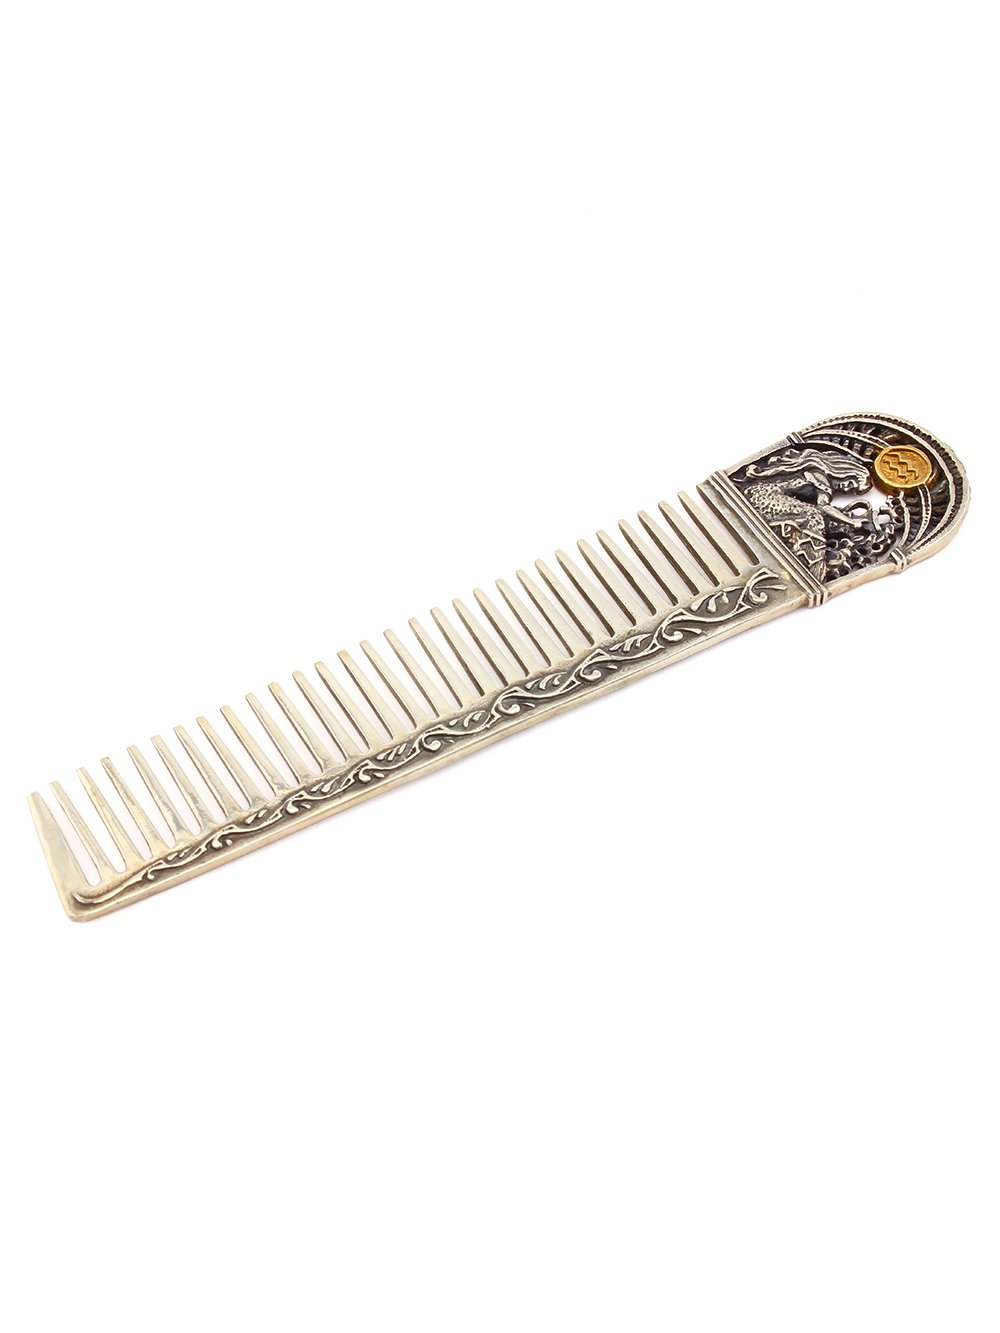 Silver Hair comb with Zodiac Horoscope Astrology Sign ''Aquarius''